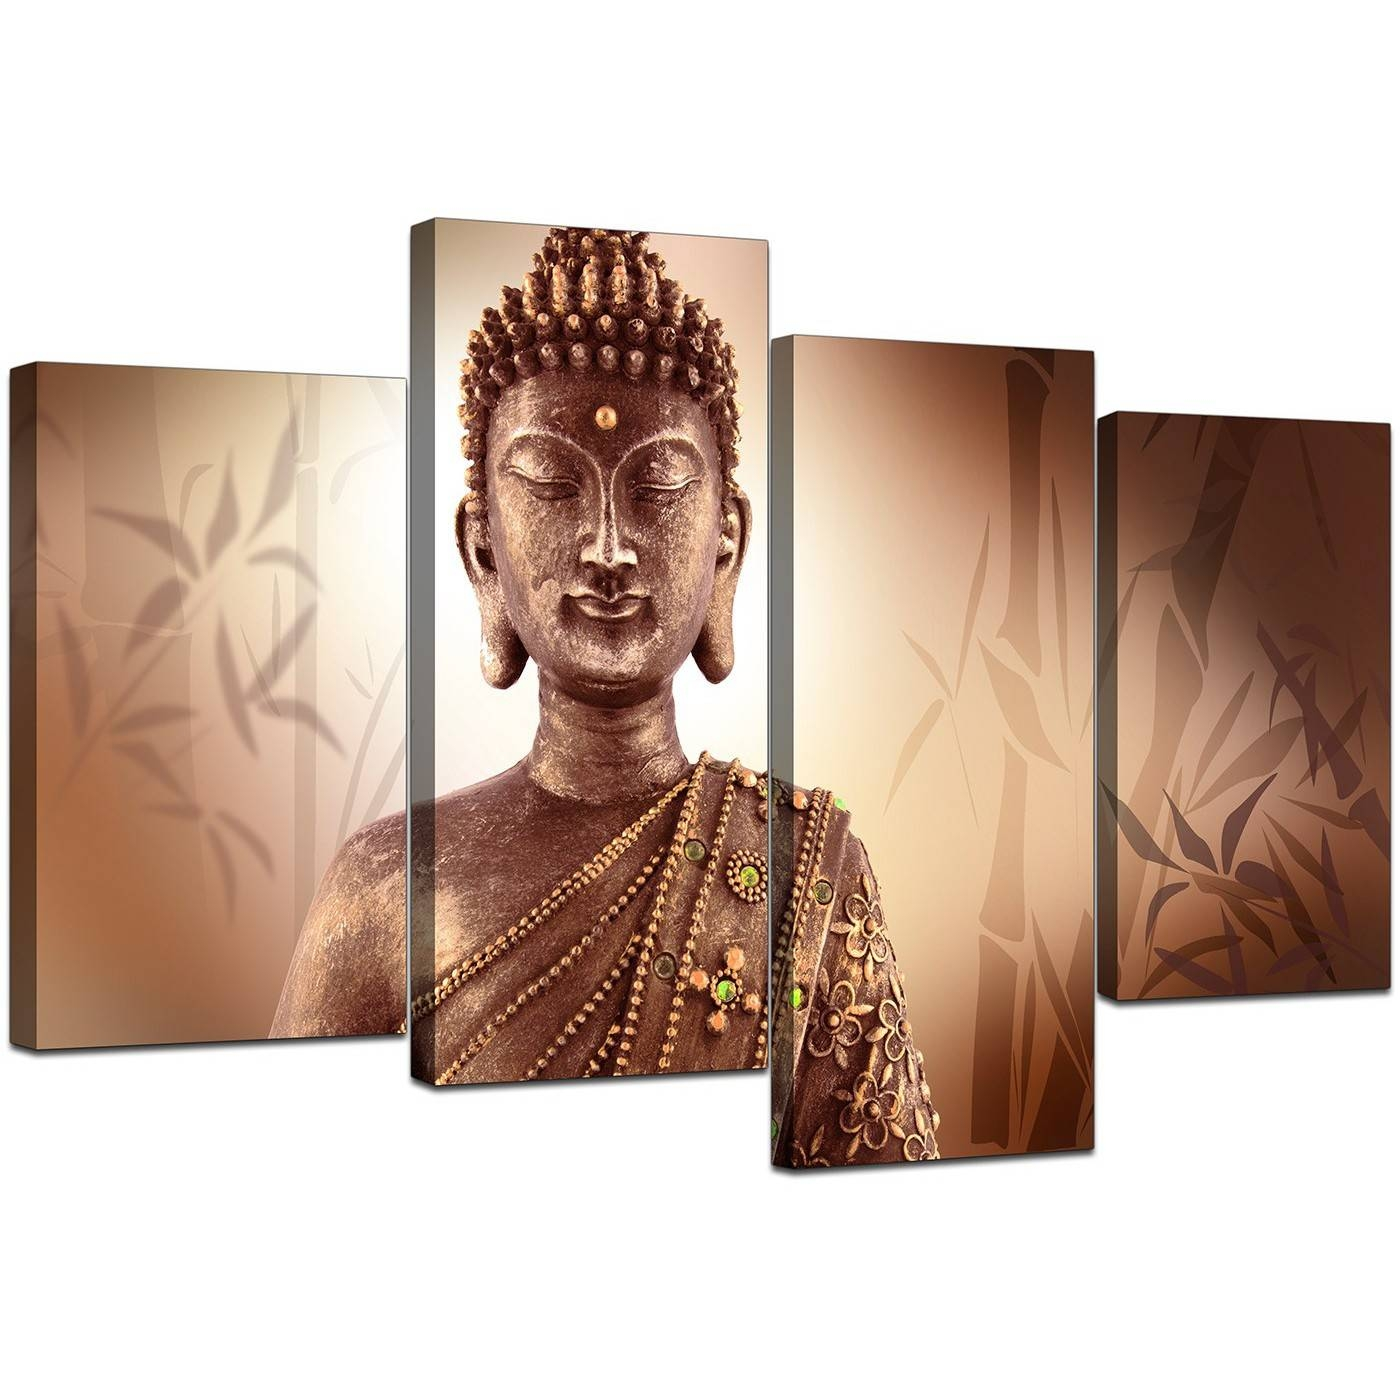 Canvas Wall Art Of Buddha In Brown For Your Hallway Inside Latest Buddha Metal Wall Art (View 20 of 20)